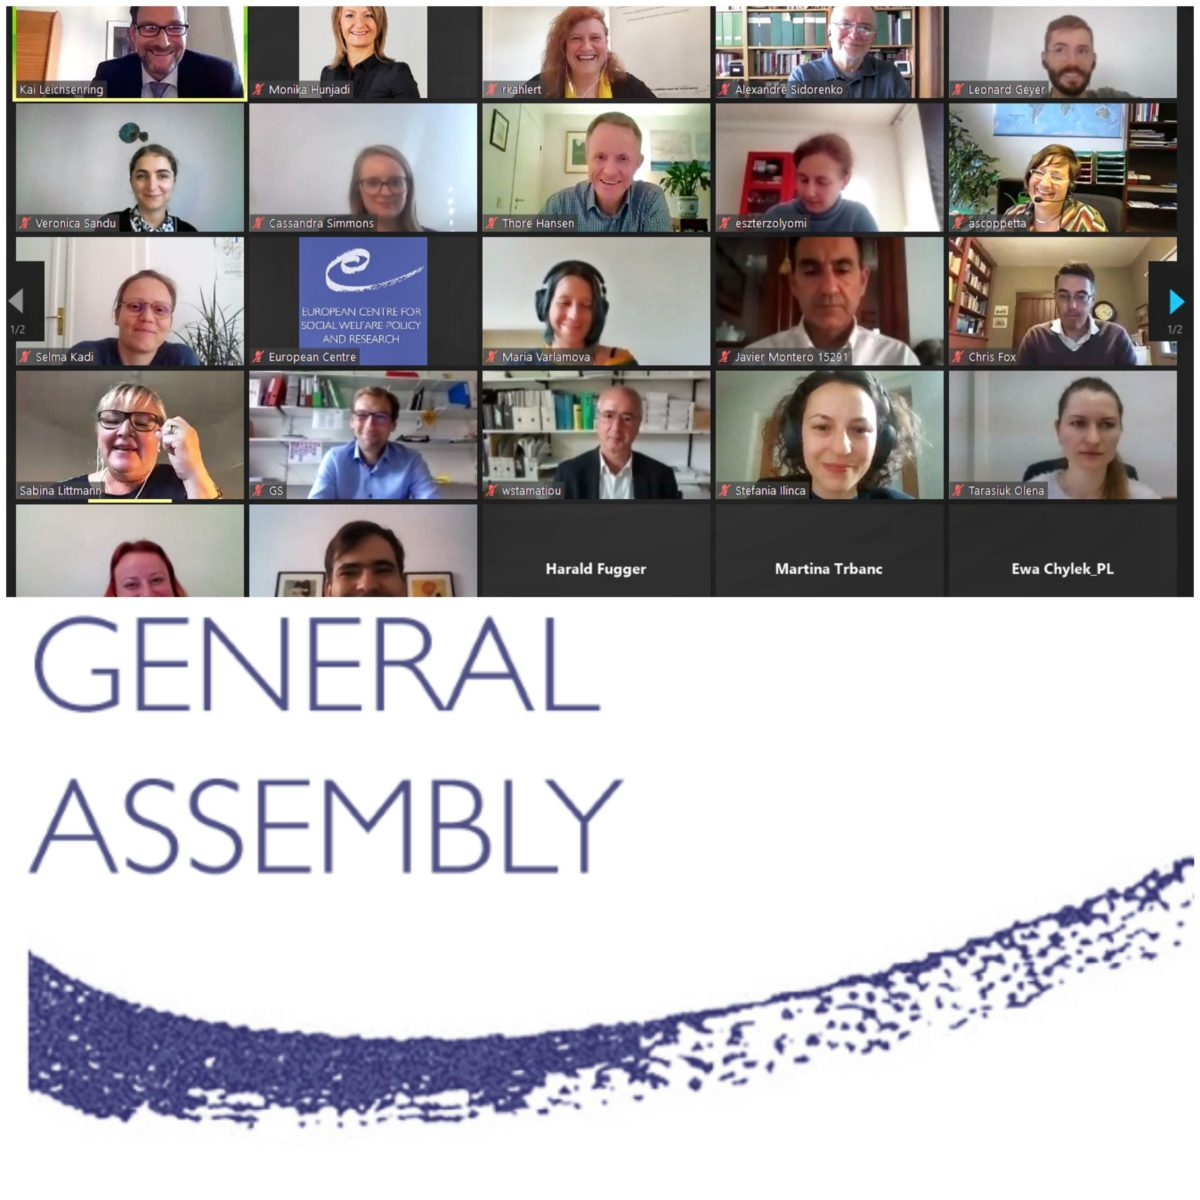 19 – 20/10/2021 47th General Assembly Meeting 2021 of the European Centre